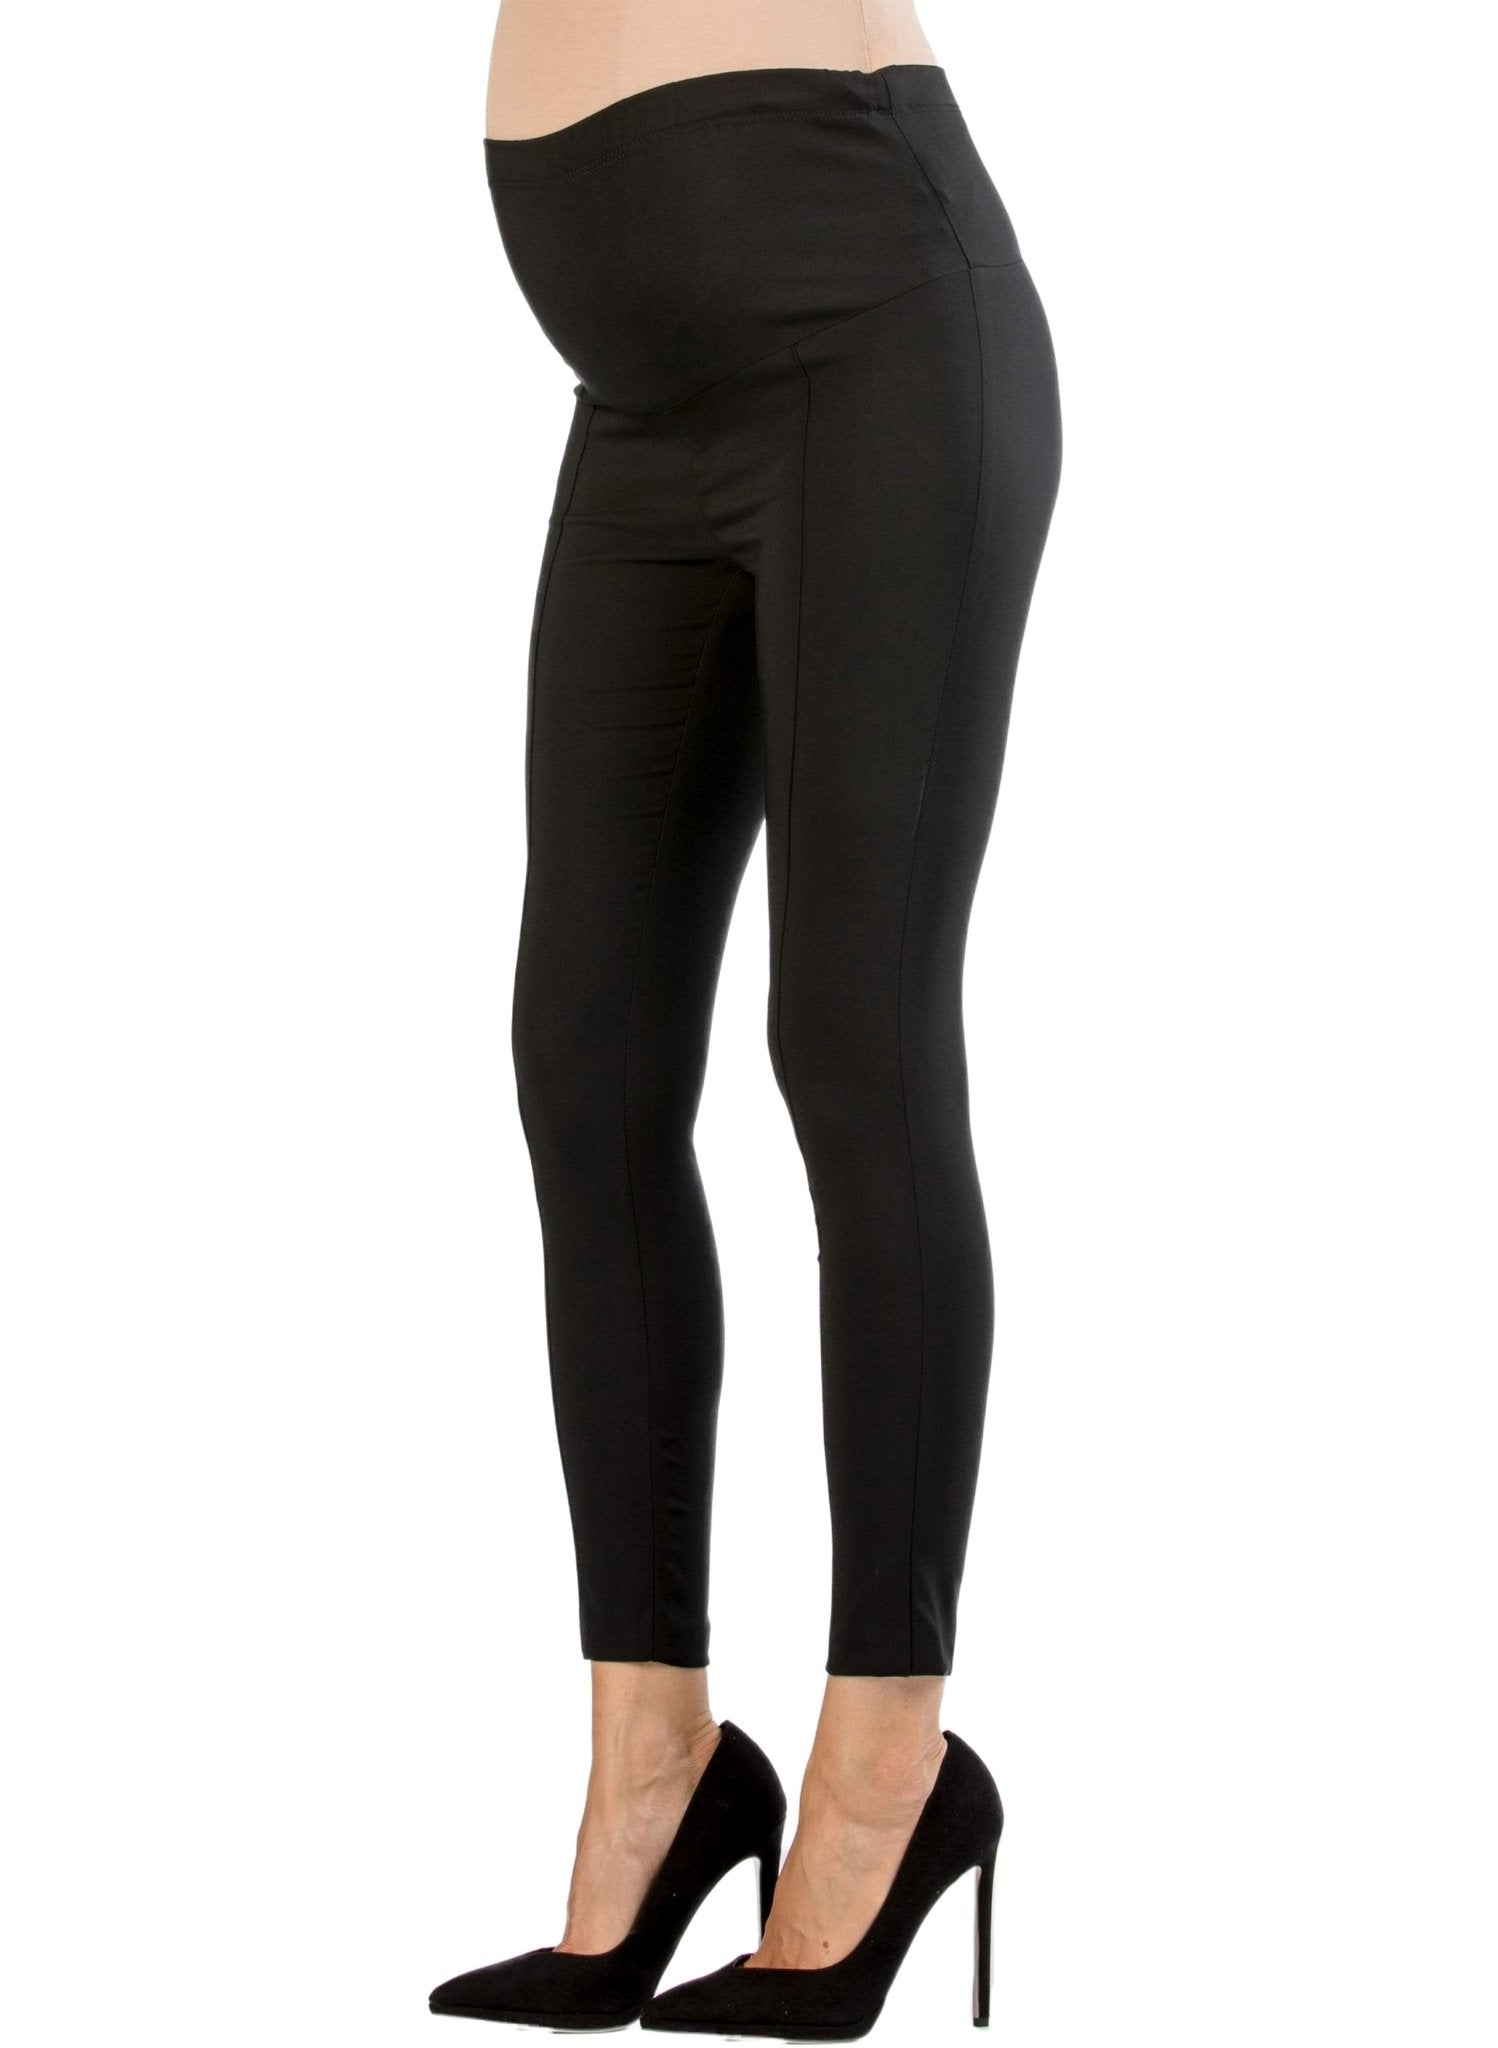 Super Stretch Maternity Legging - Black - Mums and Bumps